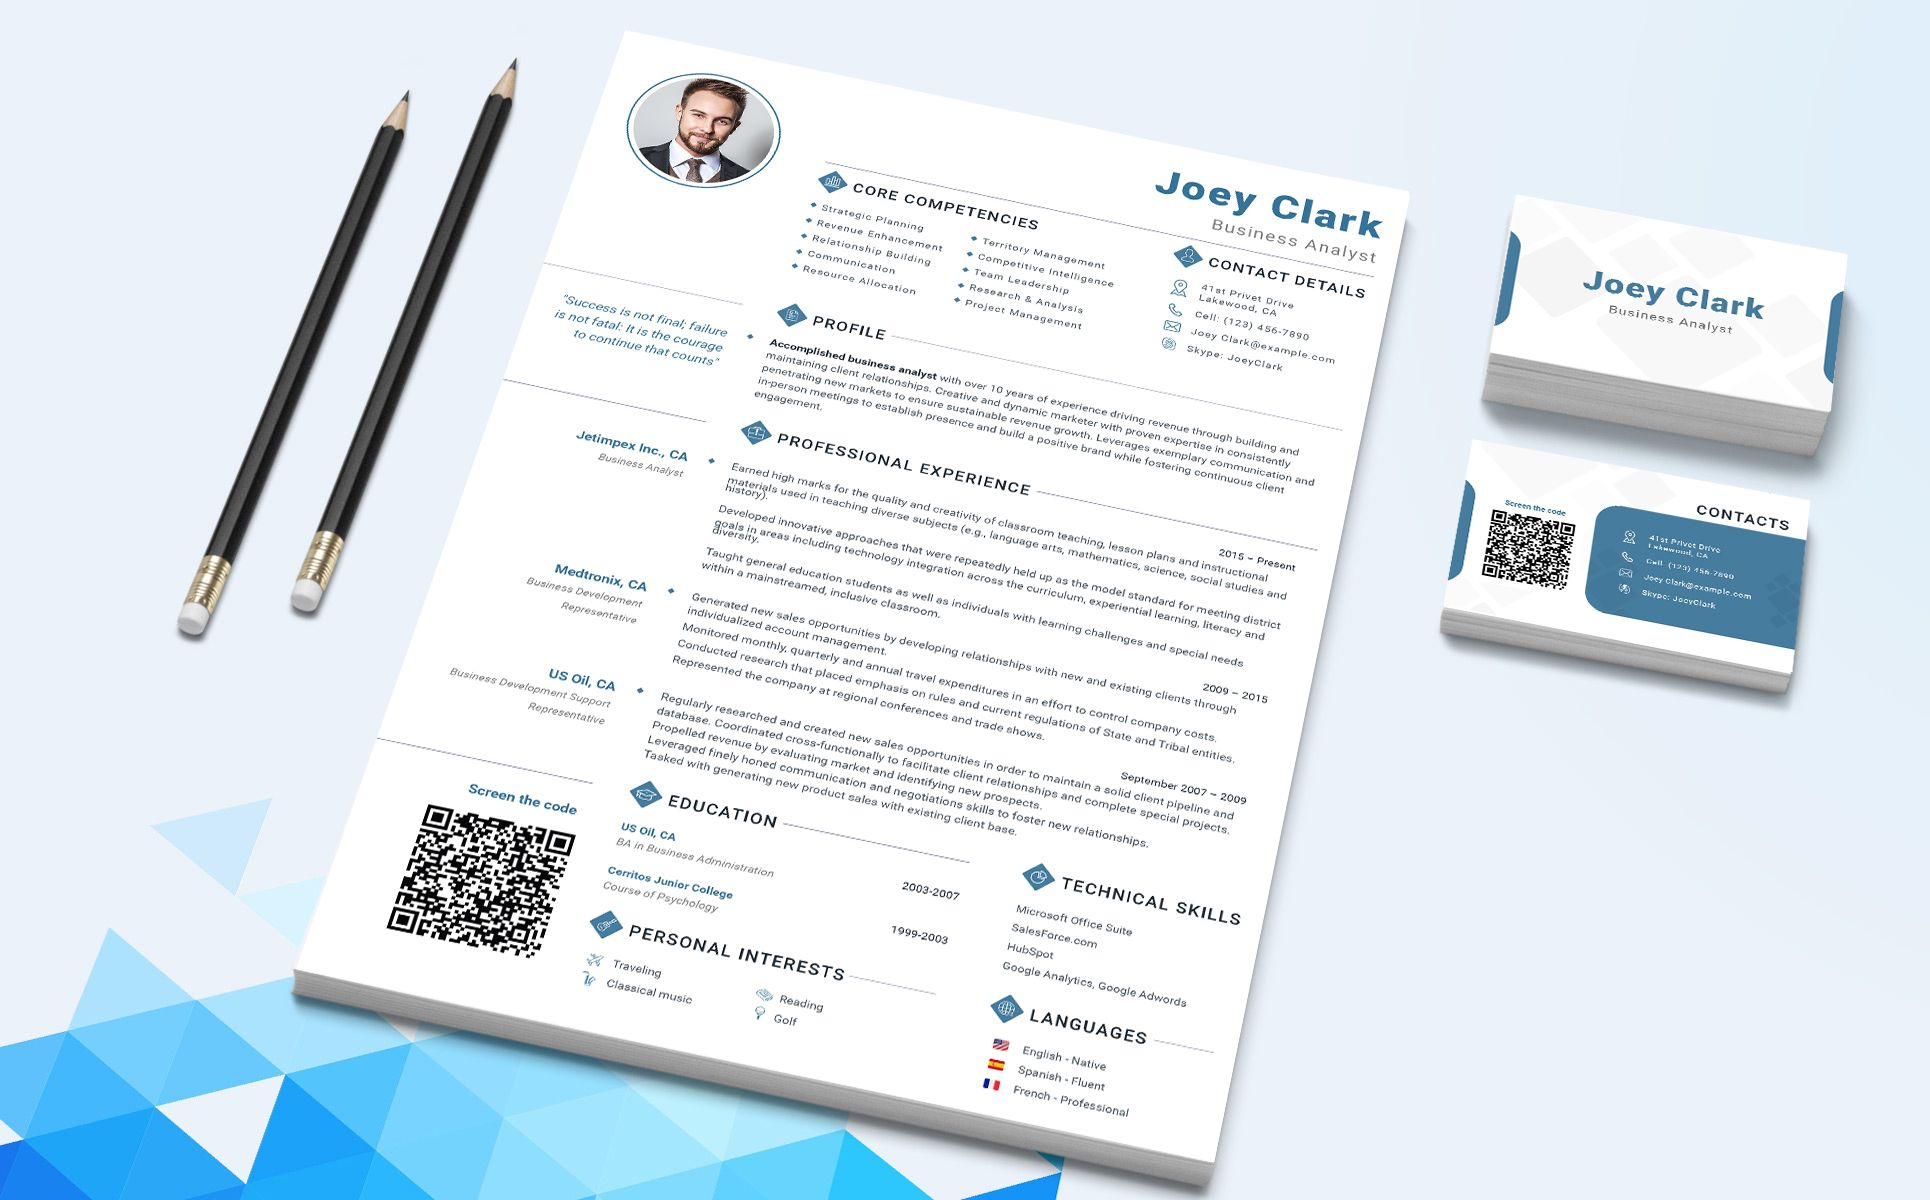 Joey clark business analyst and financial consultant